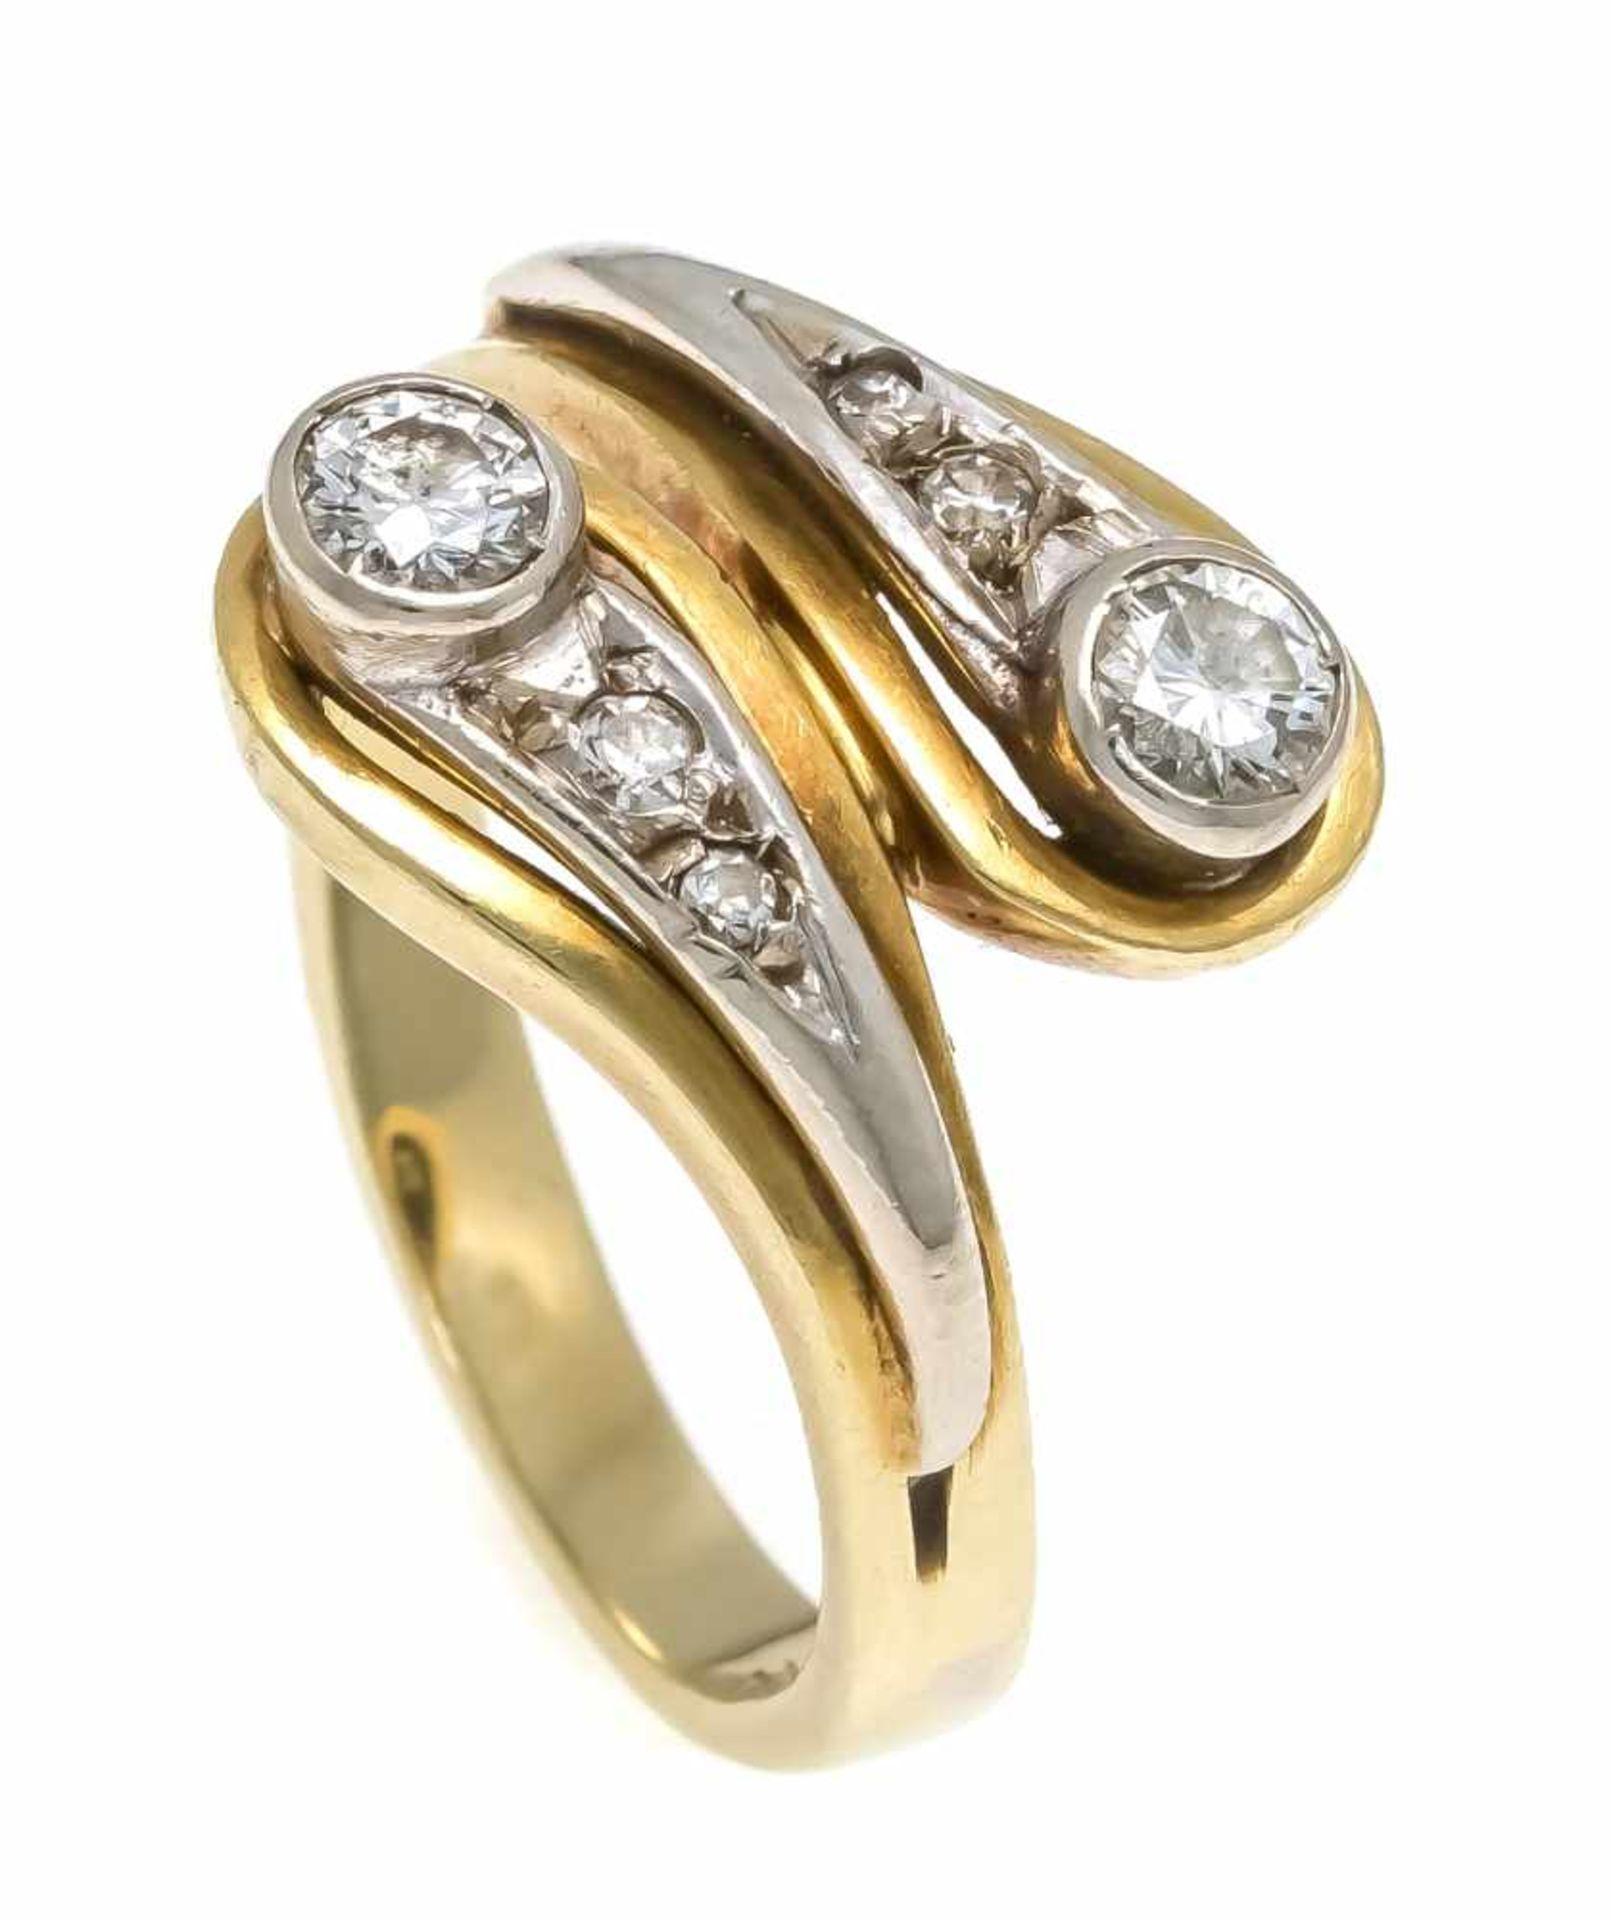 Brillant-Ring GG/WG 585/000 mit 2 Brillanten und 4 Diamanten, zus. 0,30 ct l.get.W-get.W/SI, RG